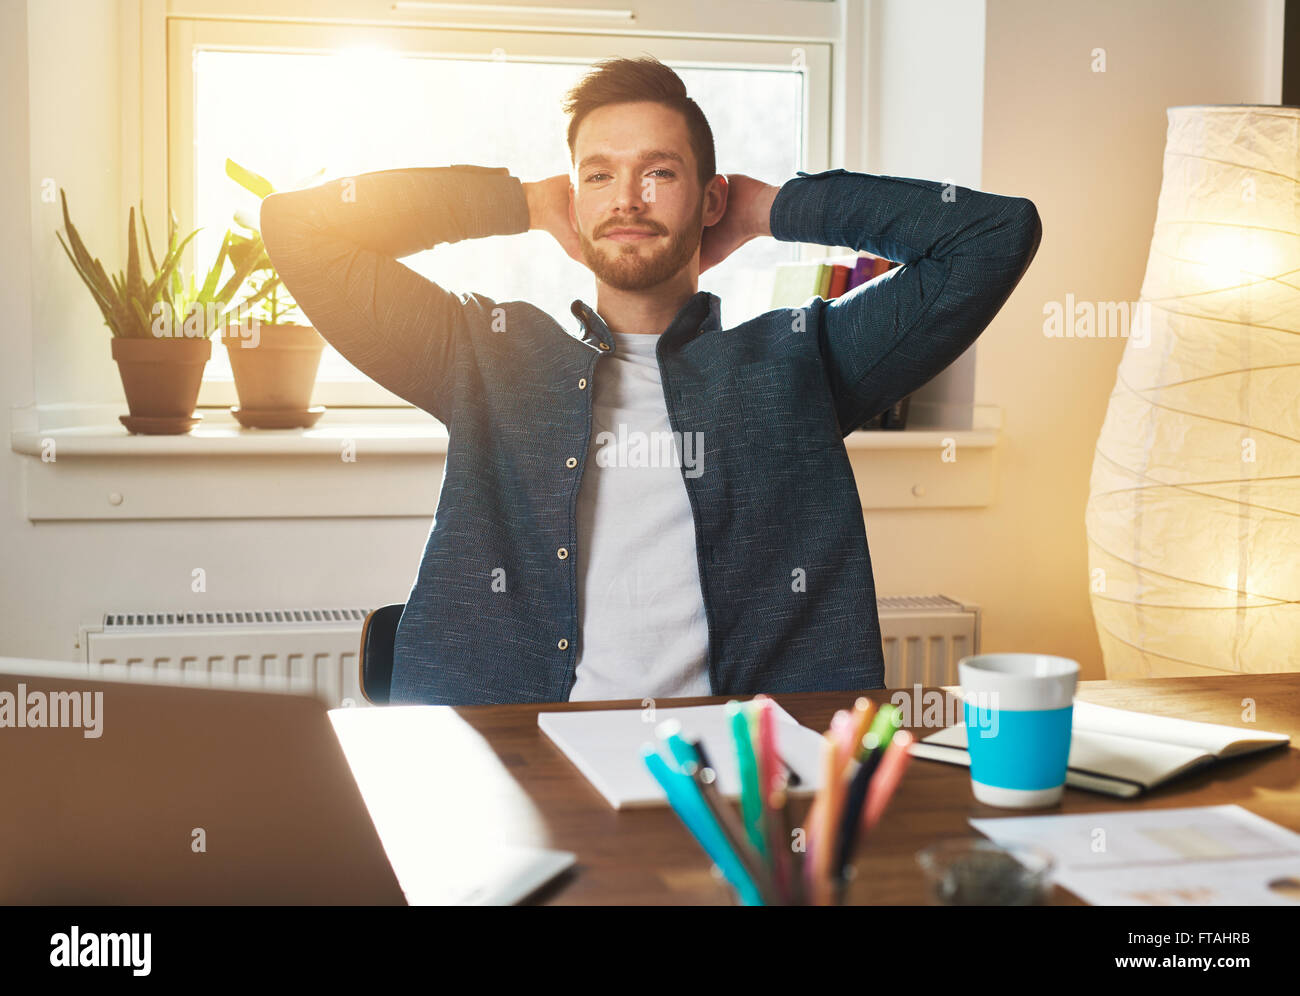 Relaxed Entrepreneur sitting with his hands raised behind his neck looking at the camera with a serious speculative - Stock Image